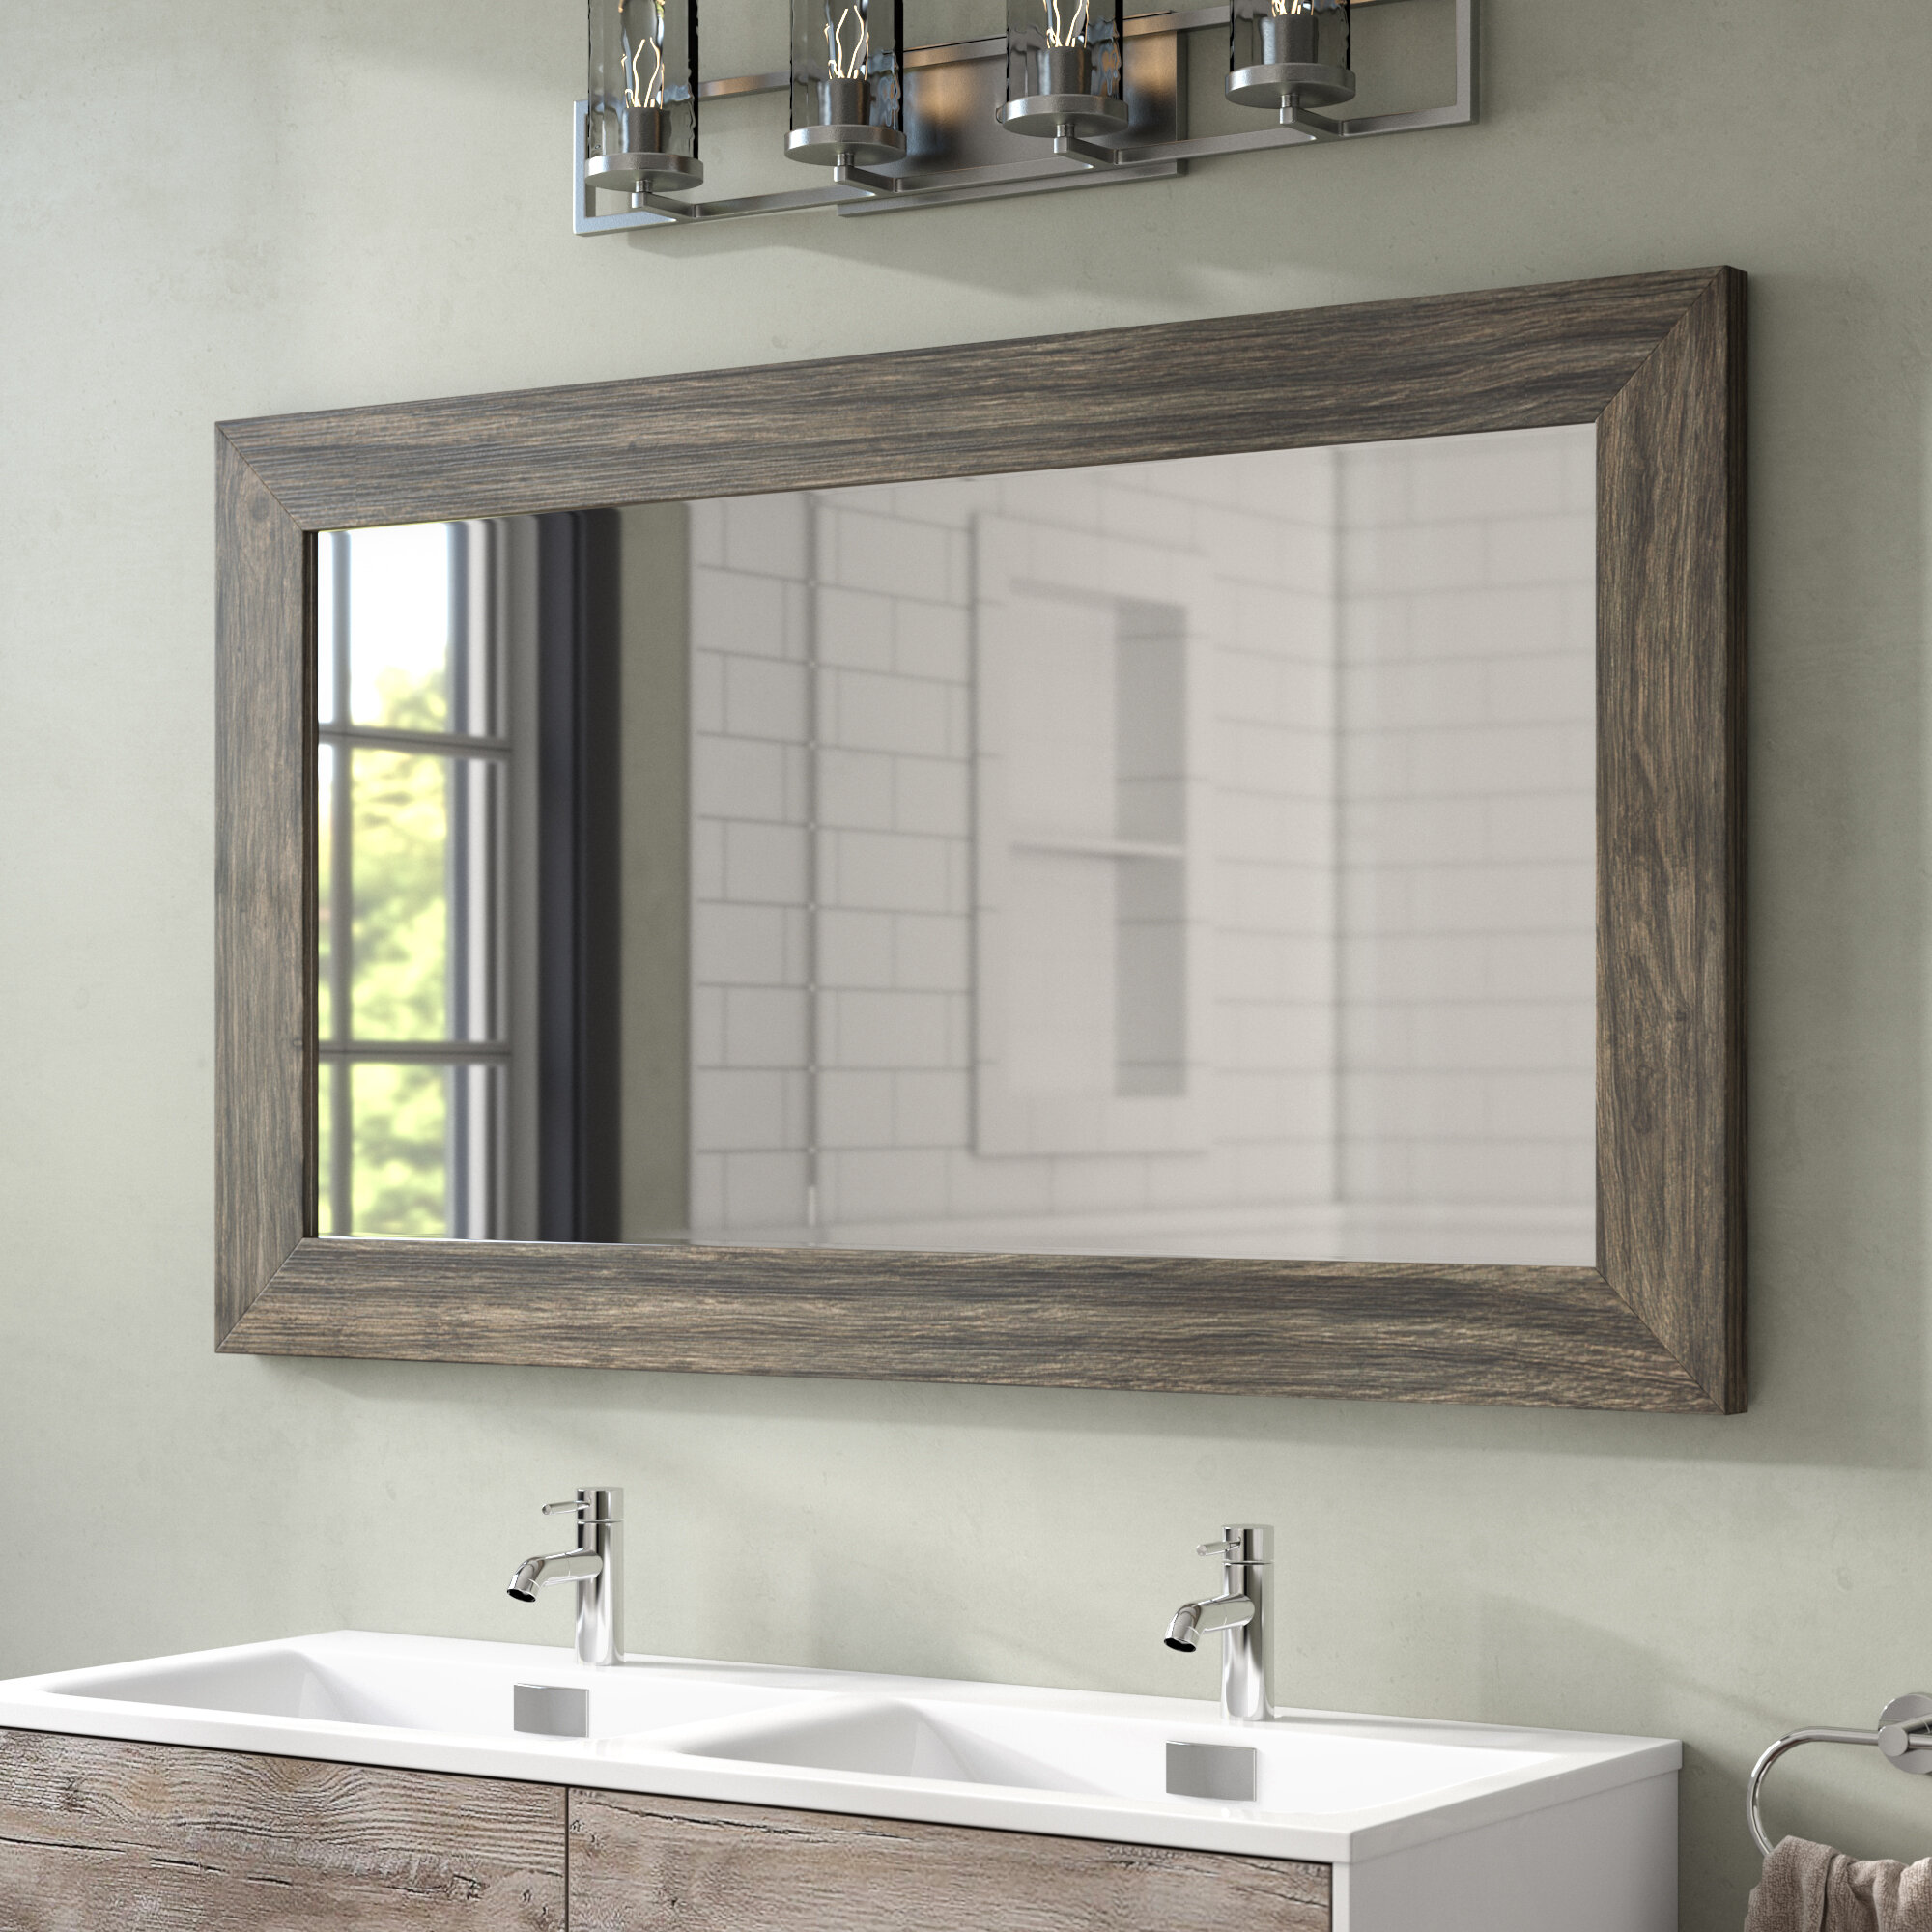 Union Rustic Landover Barnwood Bathroom Mirror & Reviews | Wayfair